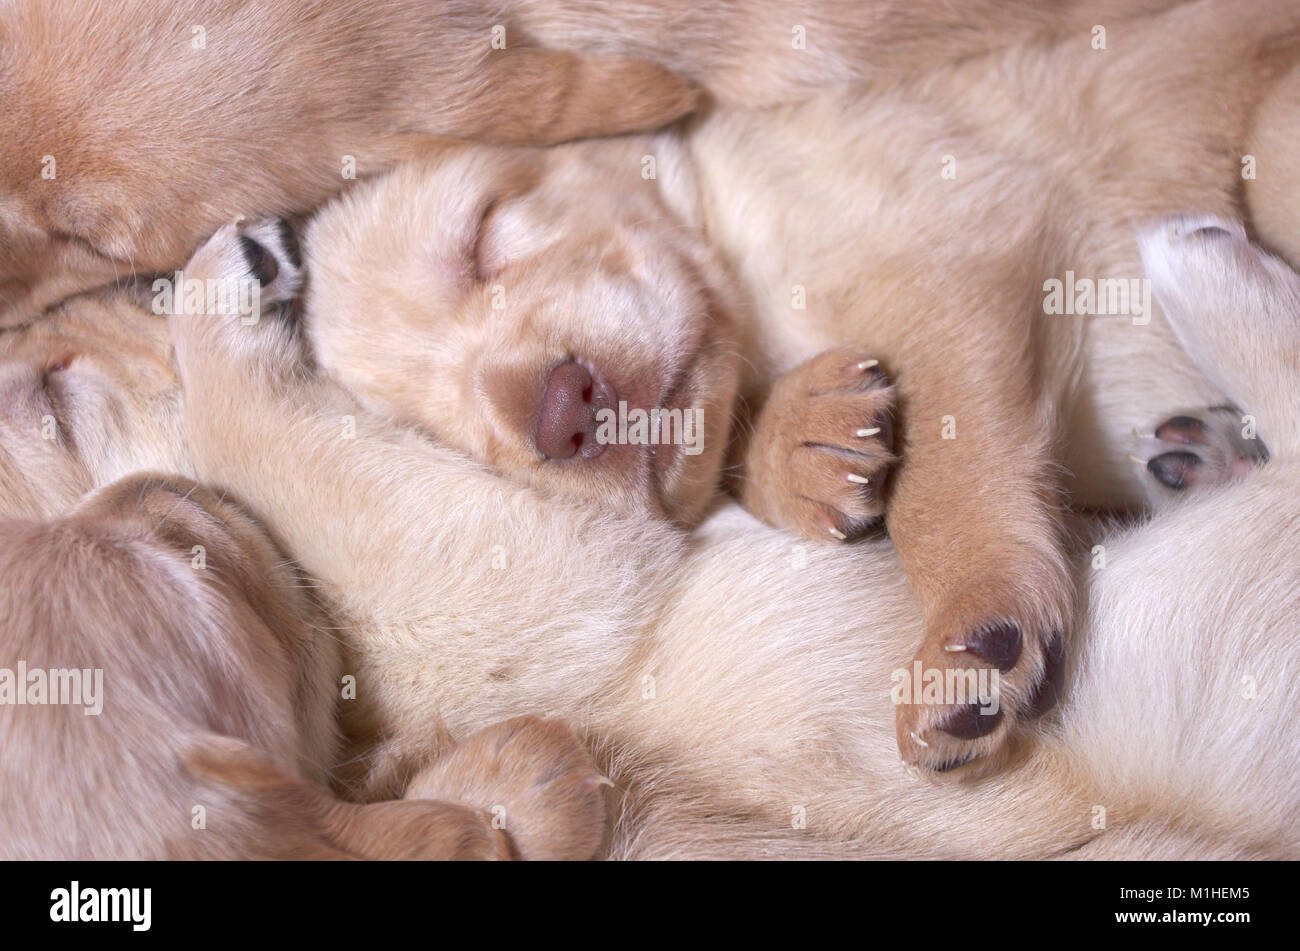 Pile of puppies sleeping - Stock Image